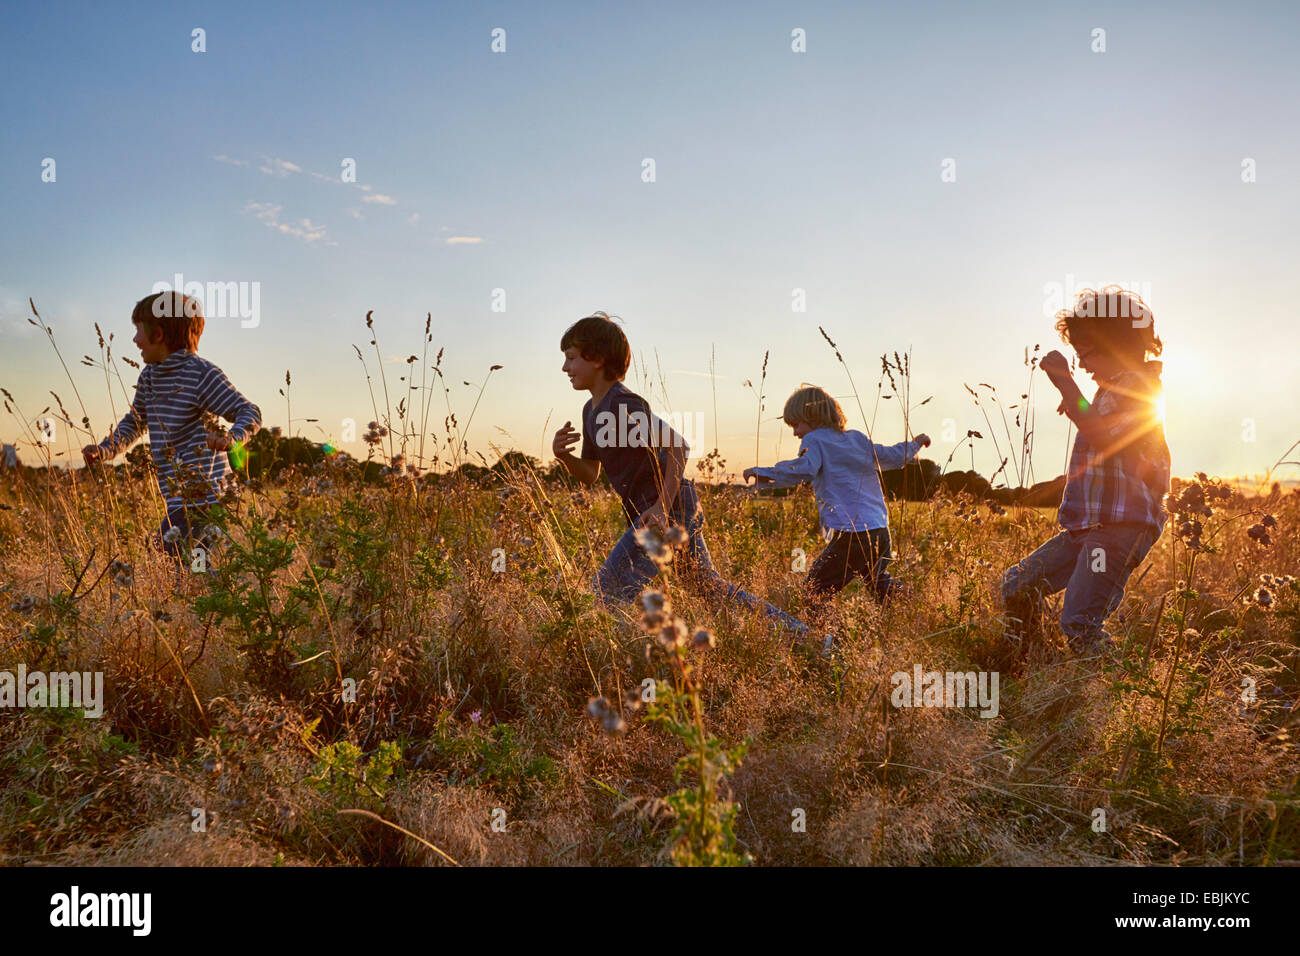 Family out walking in the park - Stock Image